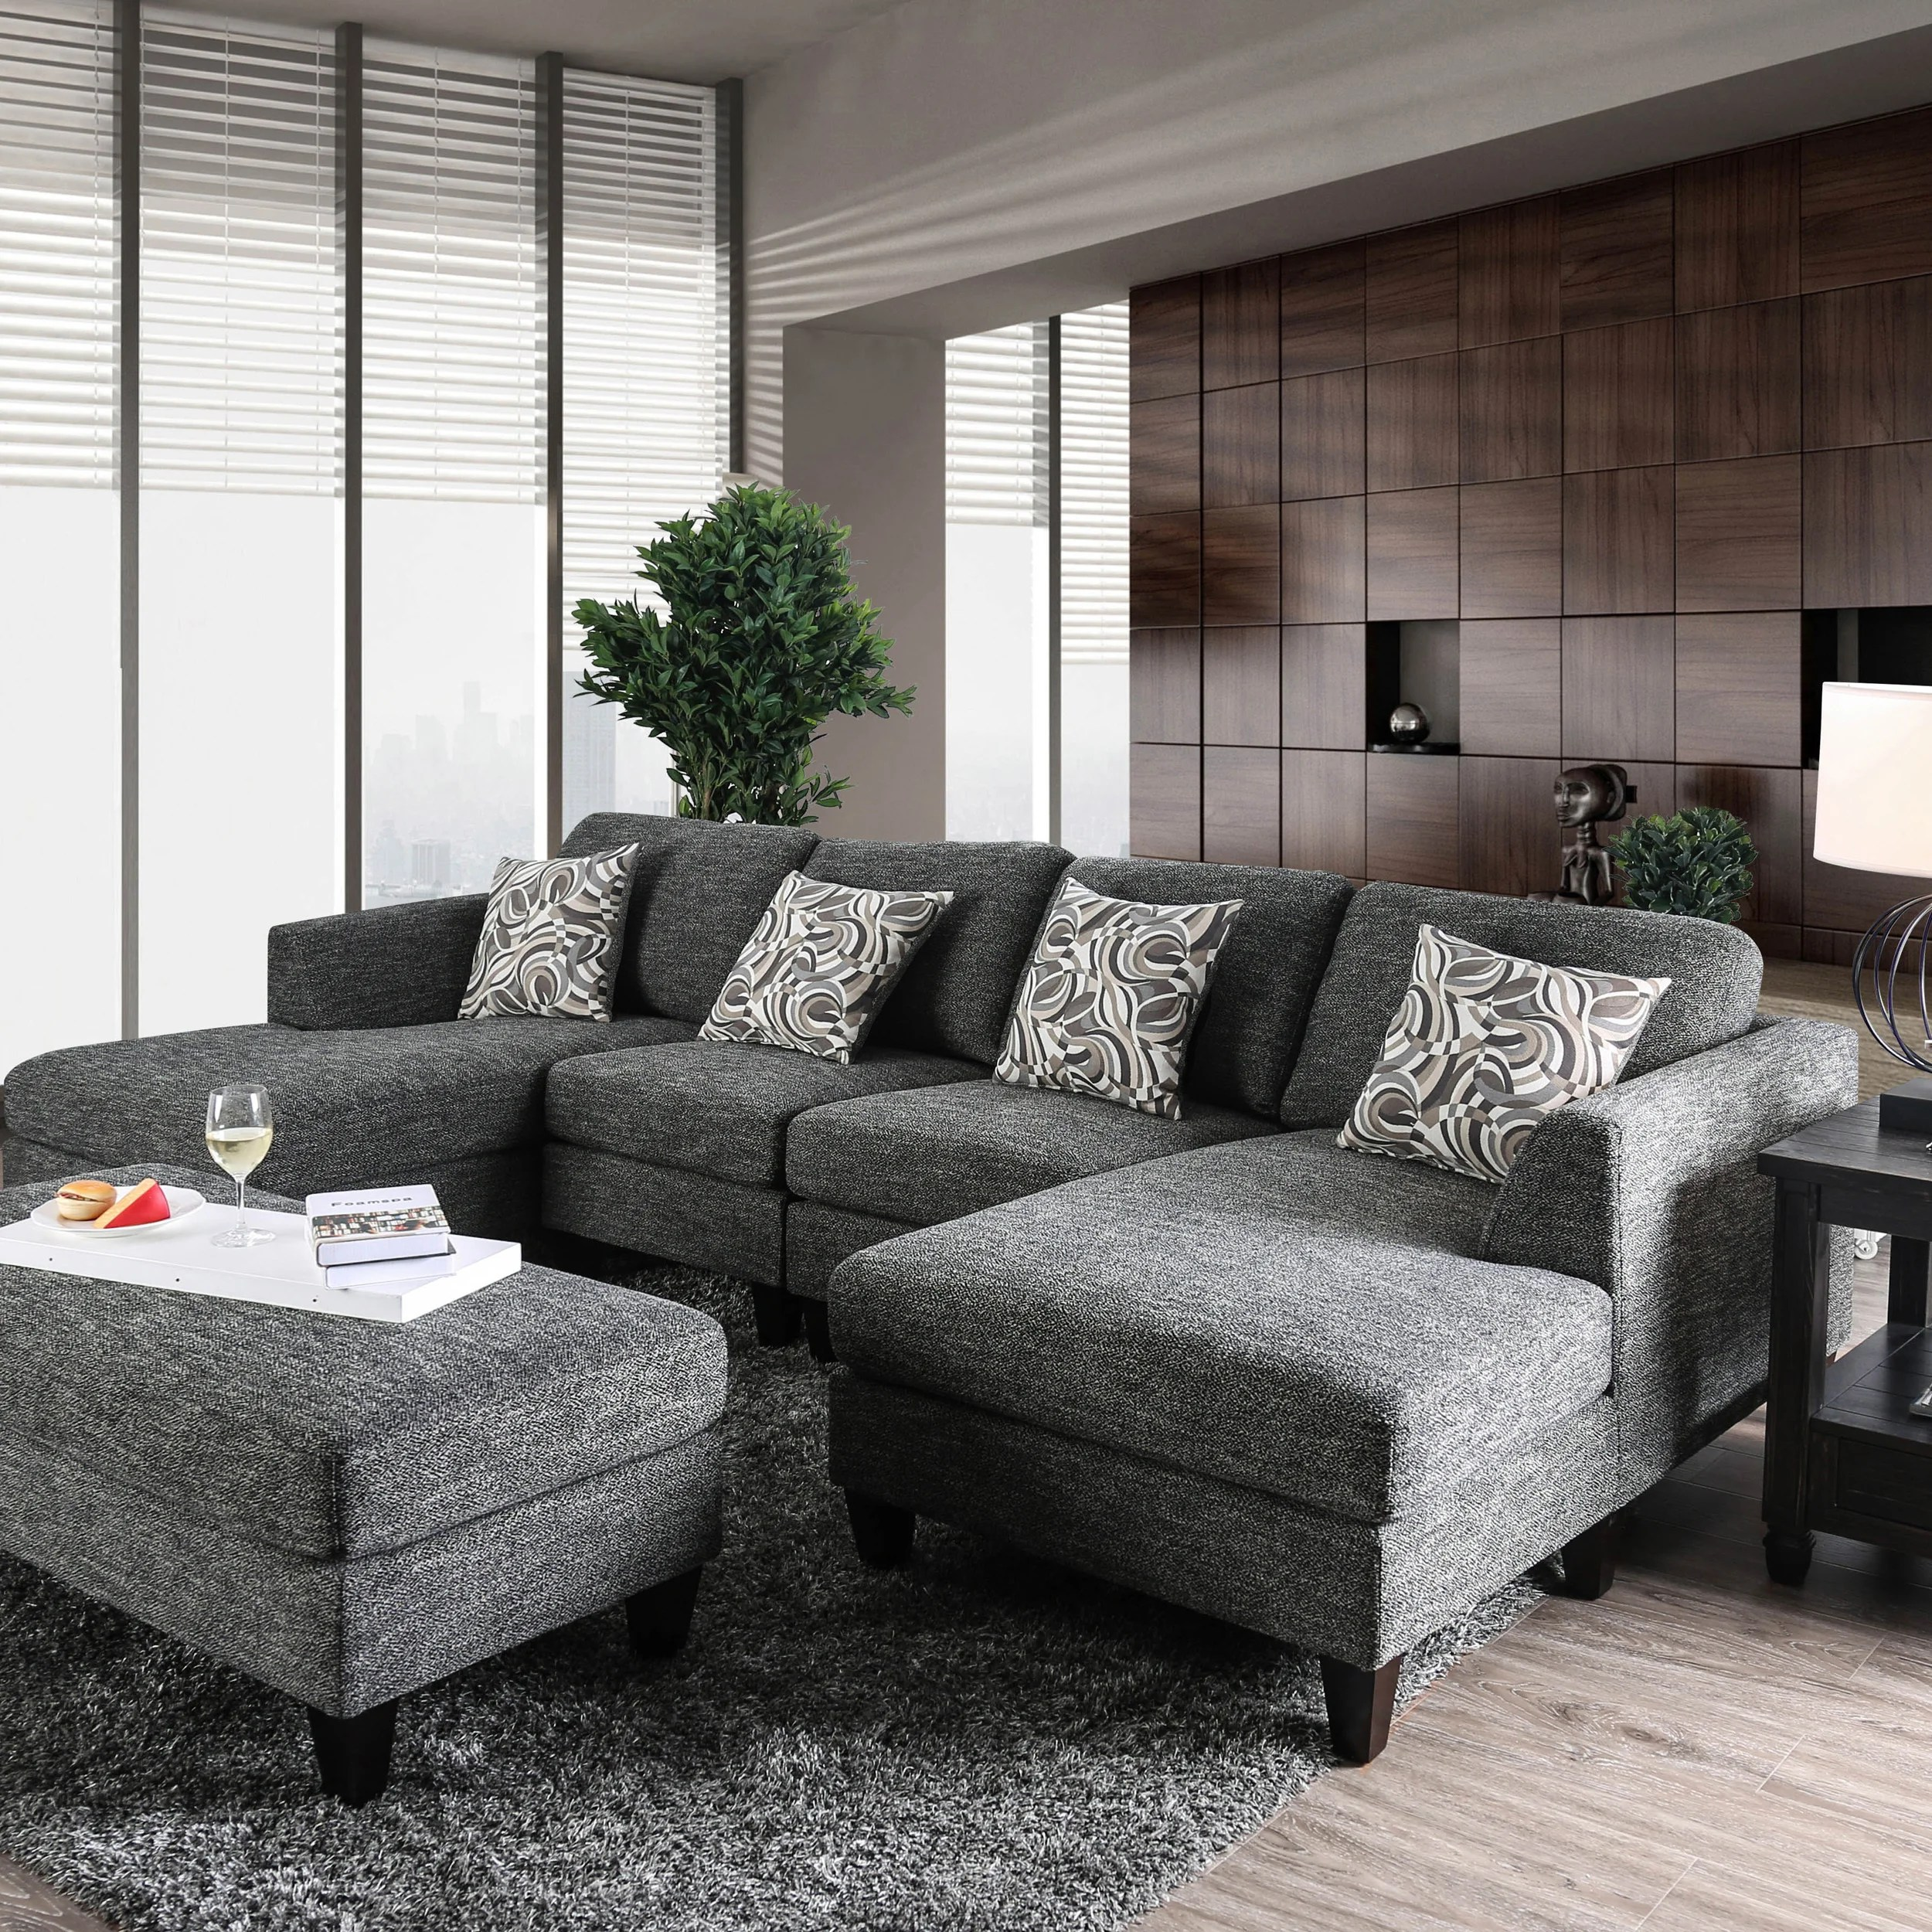 Furniture Of America Lauf Modern Grey 4 Piece Modular Sectional